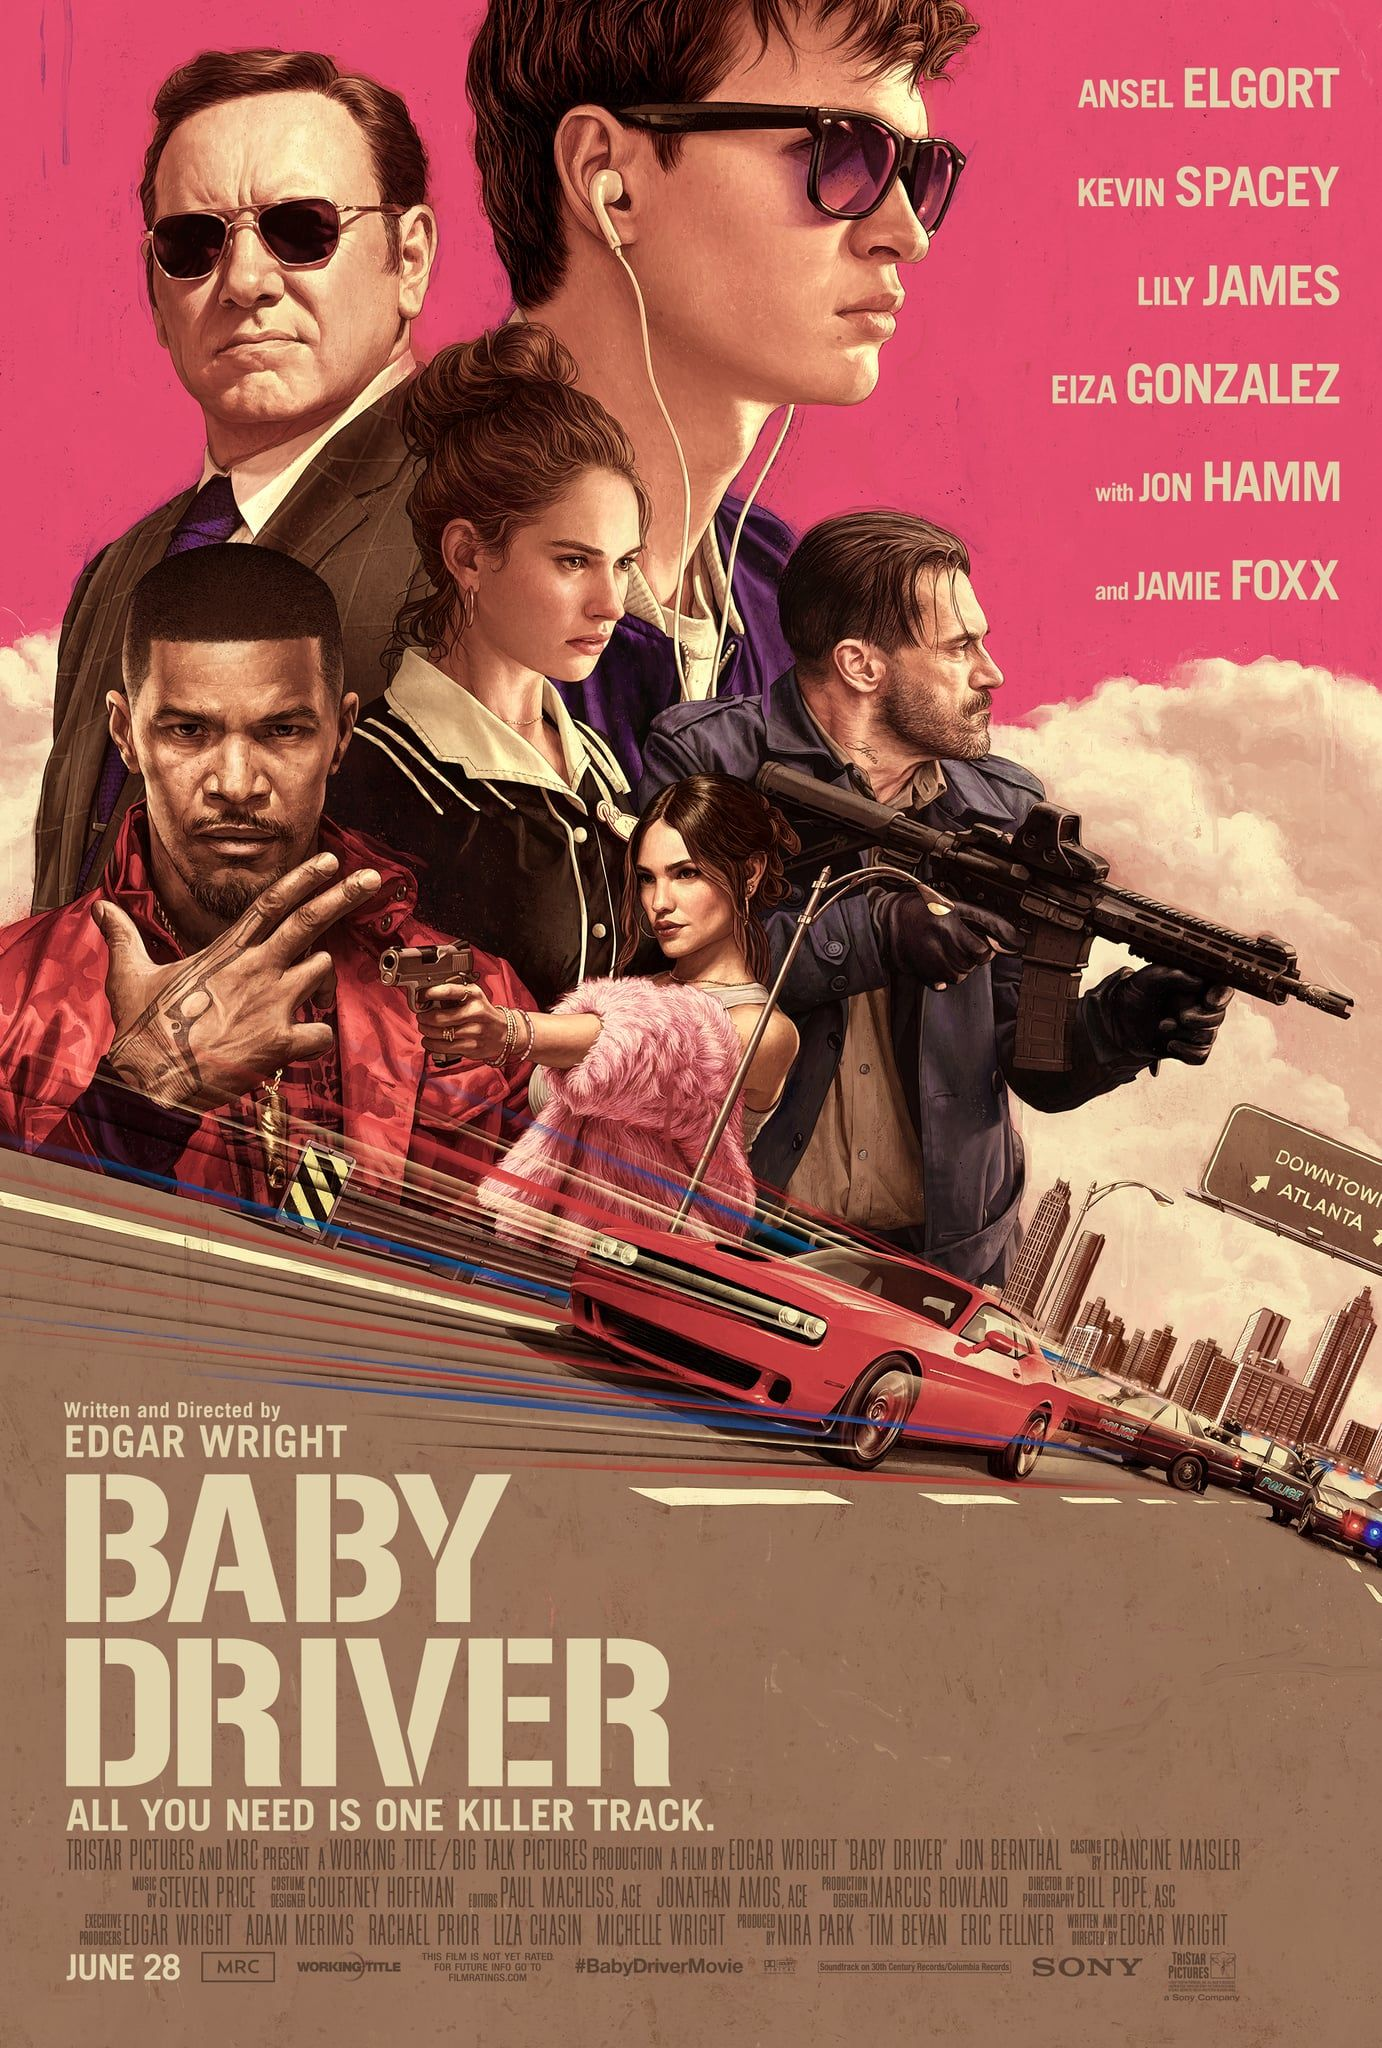 baby driver full movie watch online free 123movies